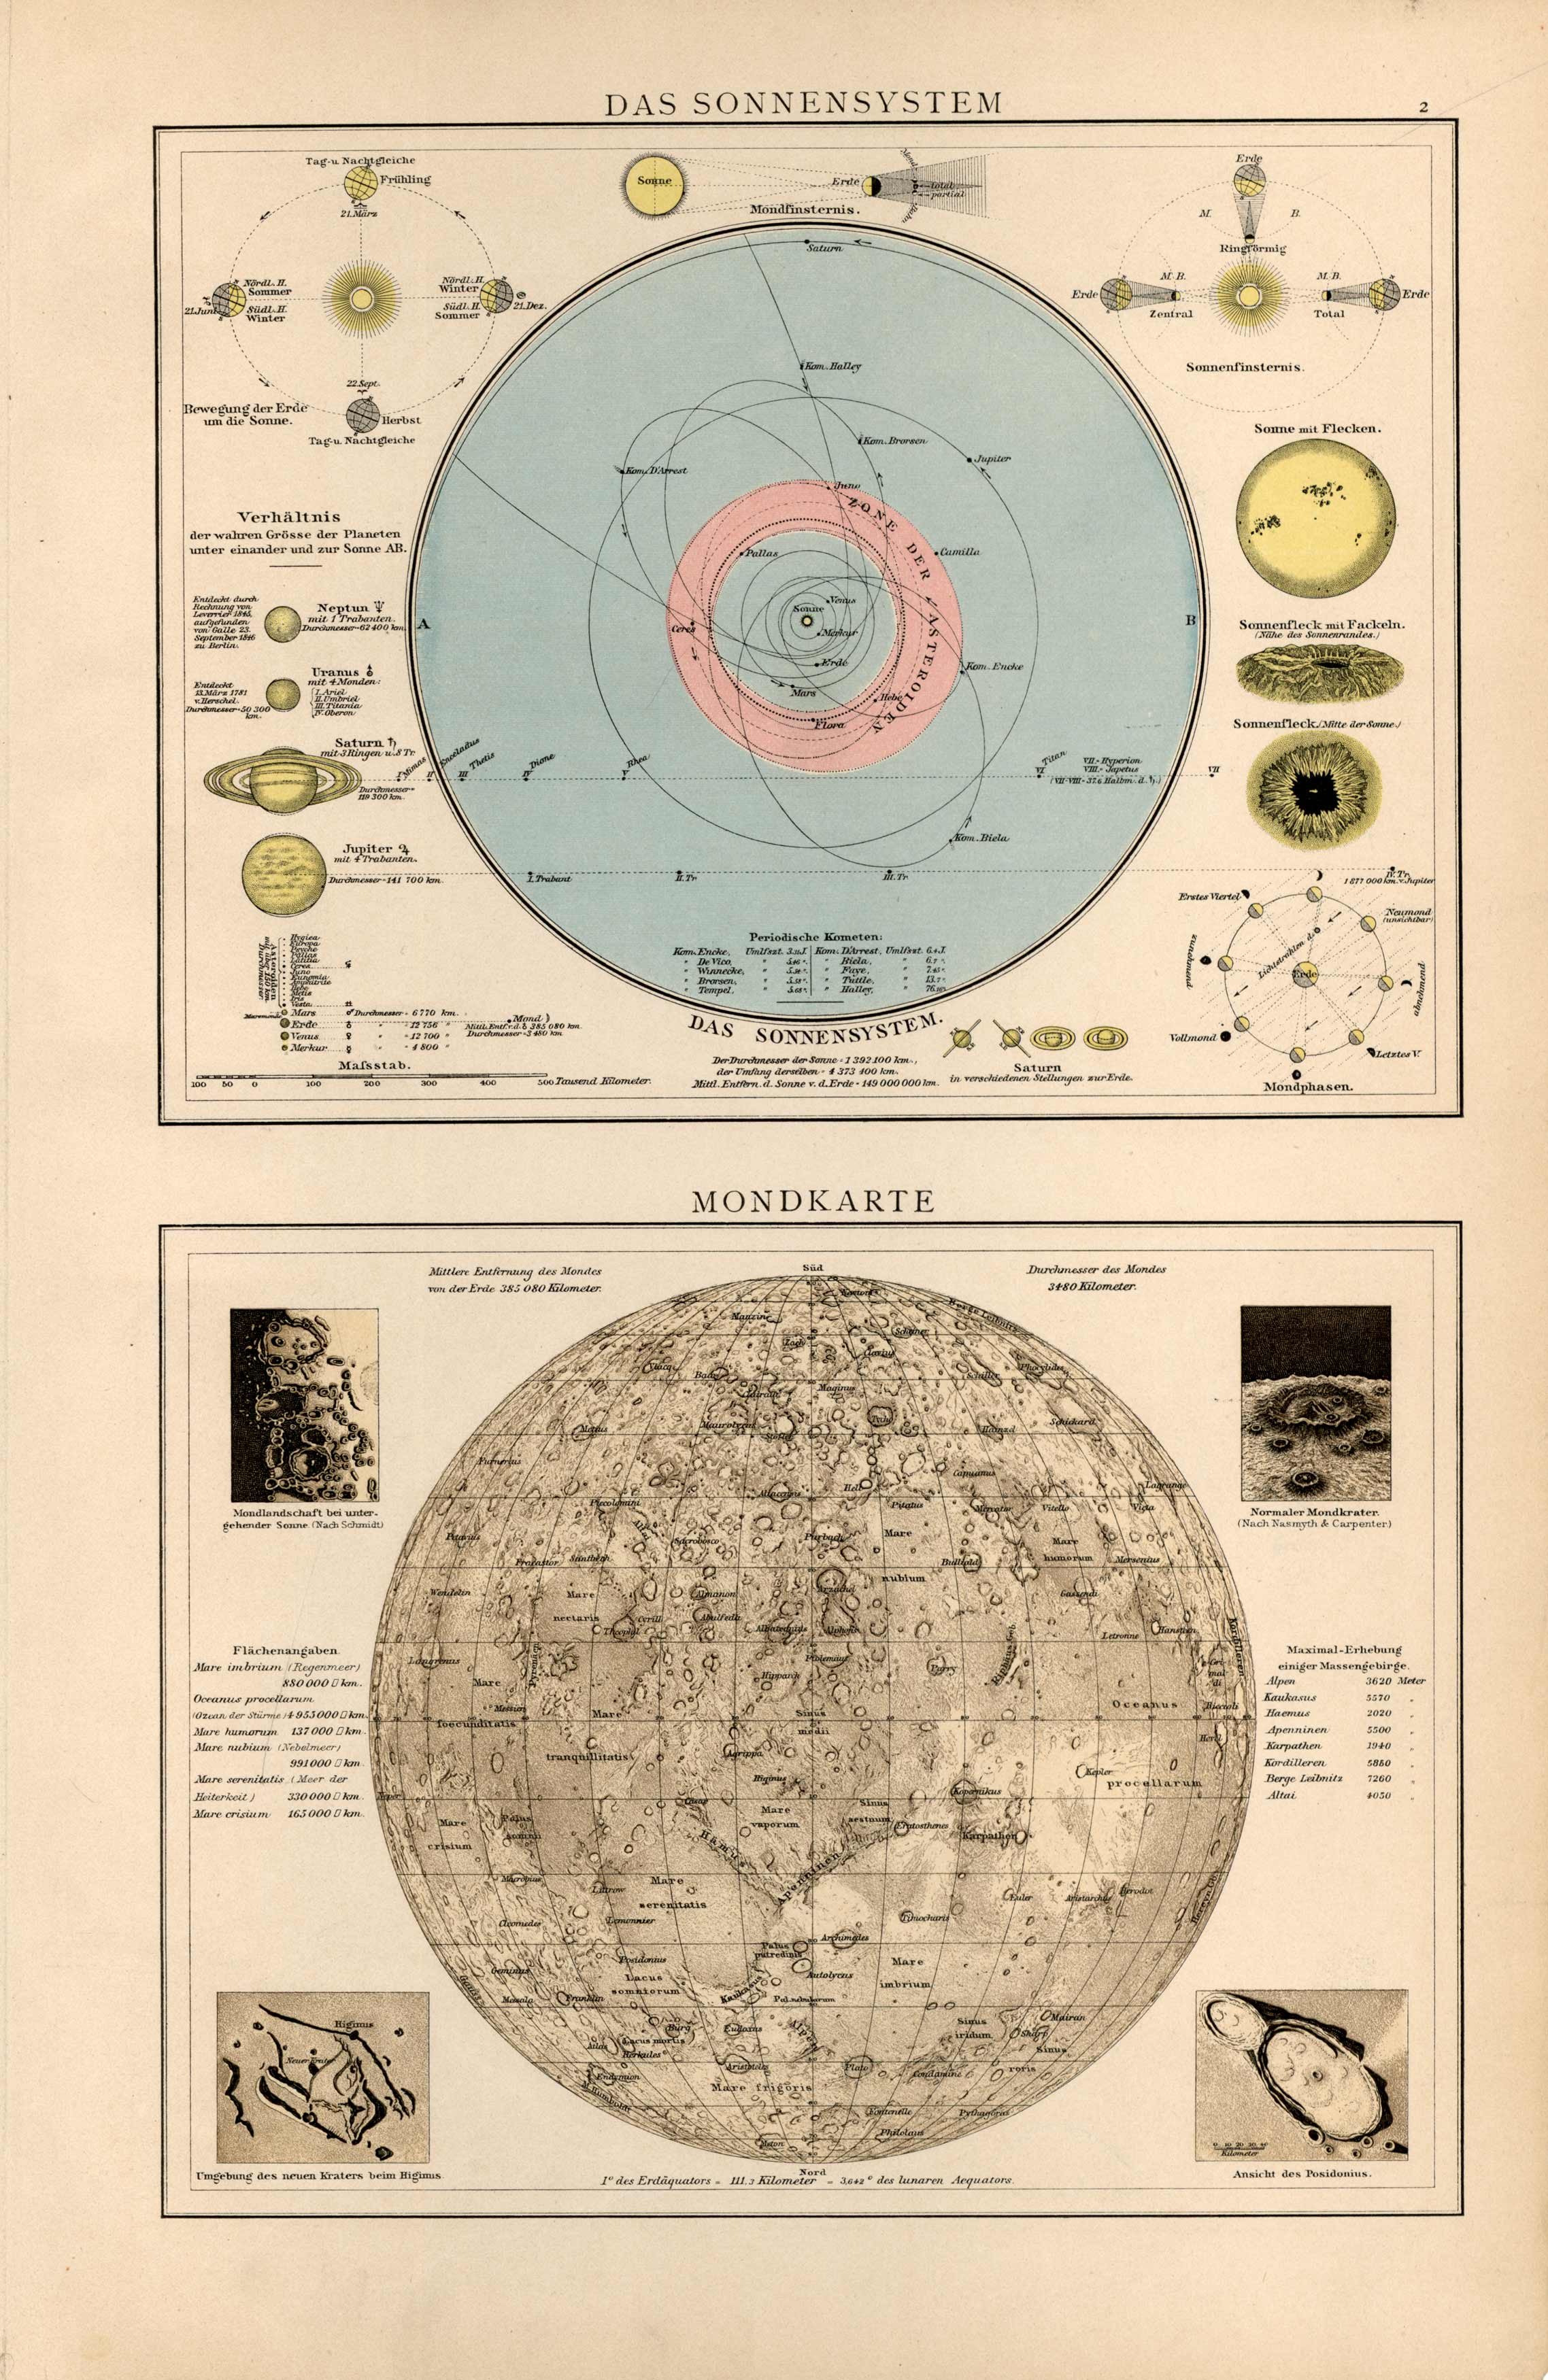 Das Sonnensystem / Mondkarte (The Solar System / Moon Map)